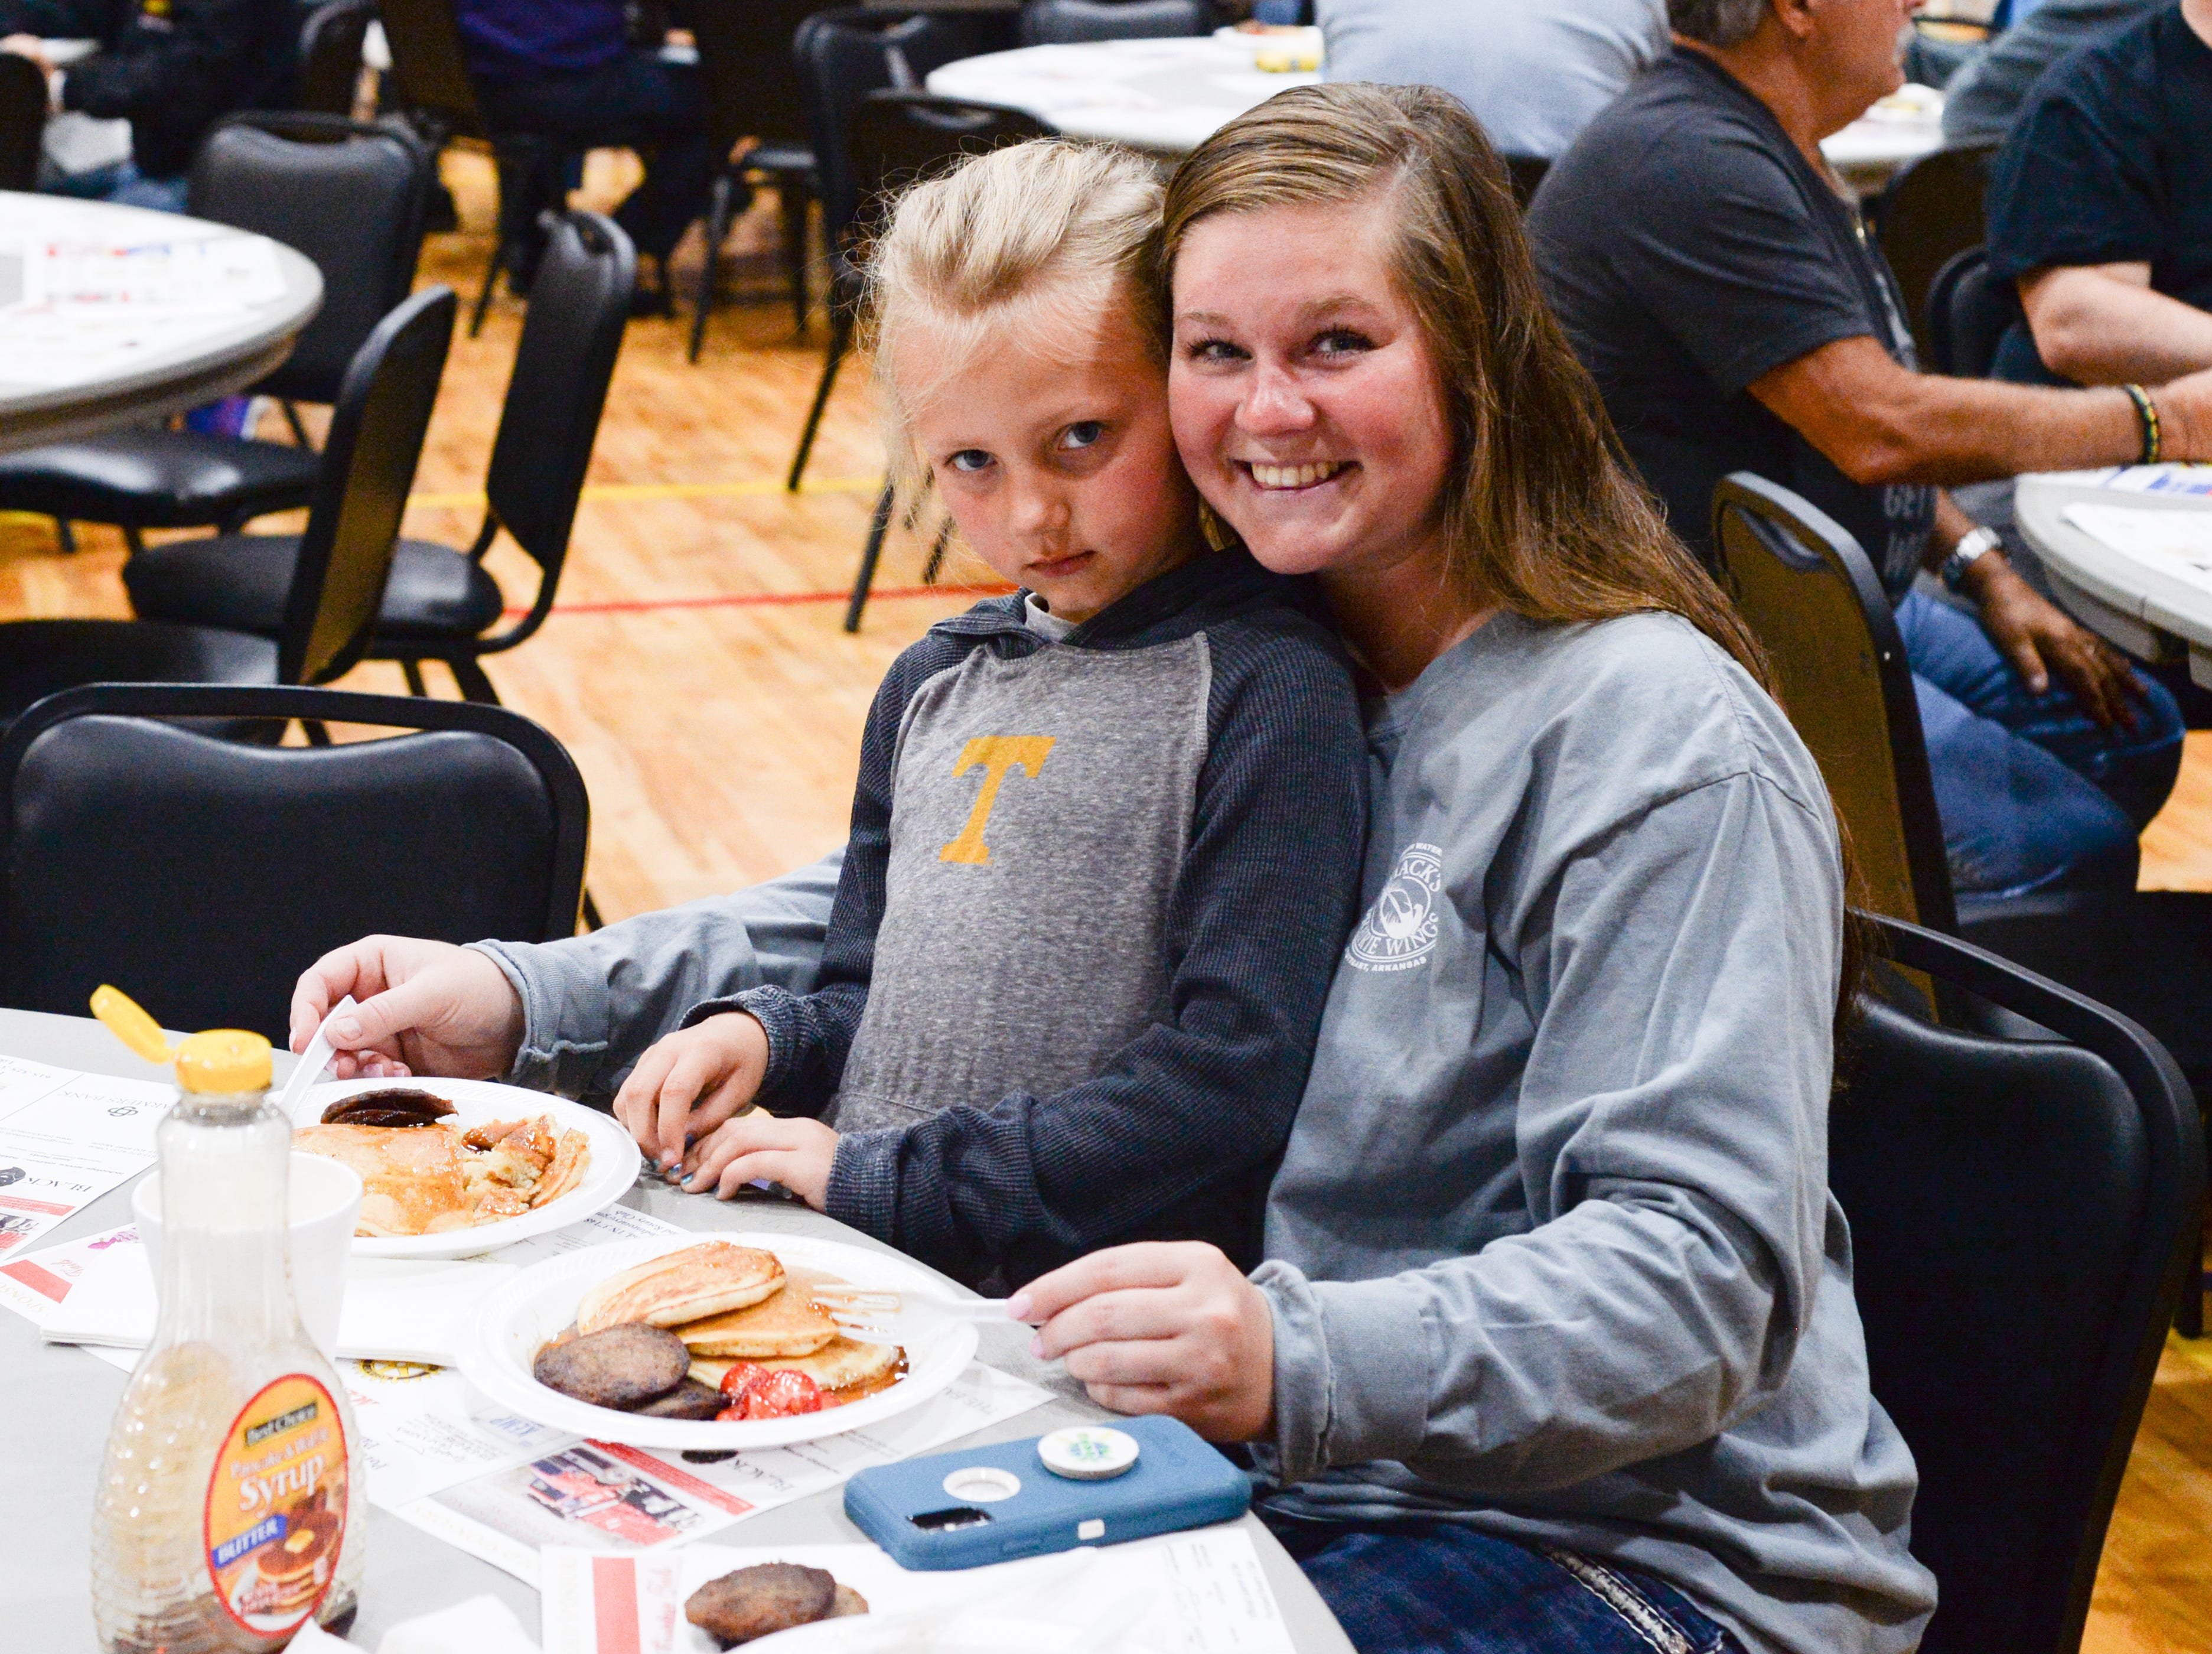 A hearty breakfast was served during the Strawberry Festival Pancake Breakfast & Silent Auction presented by the Portland Rotary Club & Portland FFA at First Baptist Church Portland on Saturday, May 11.